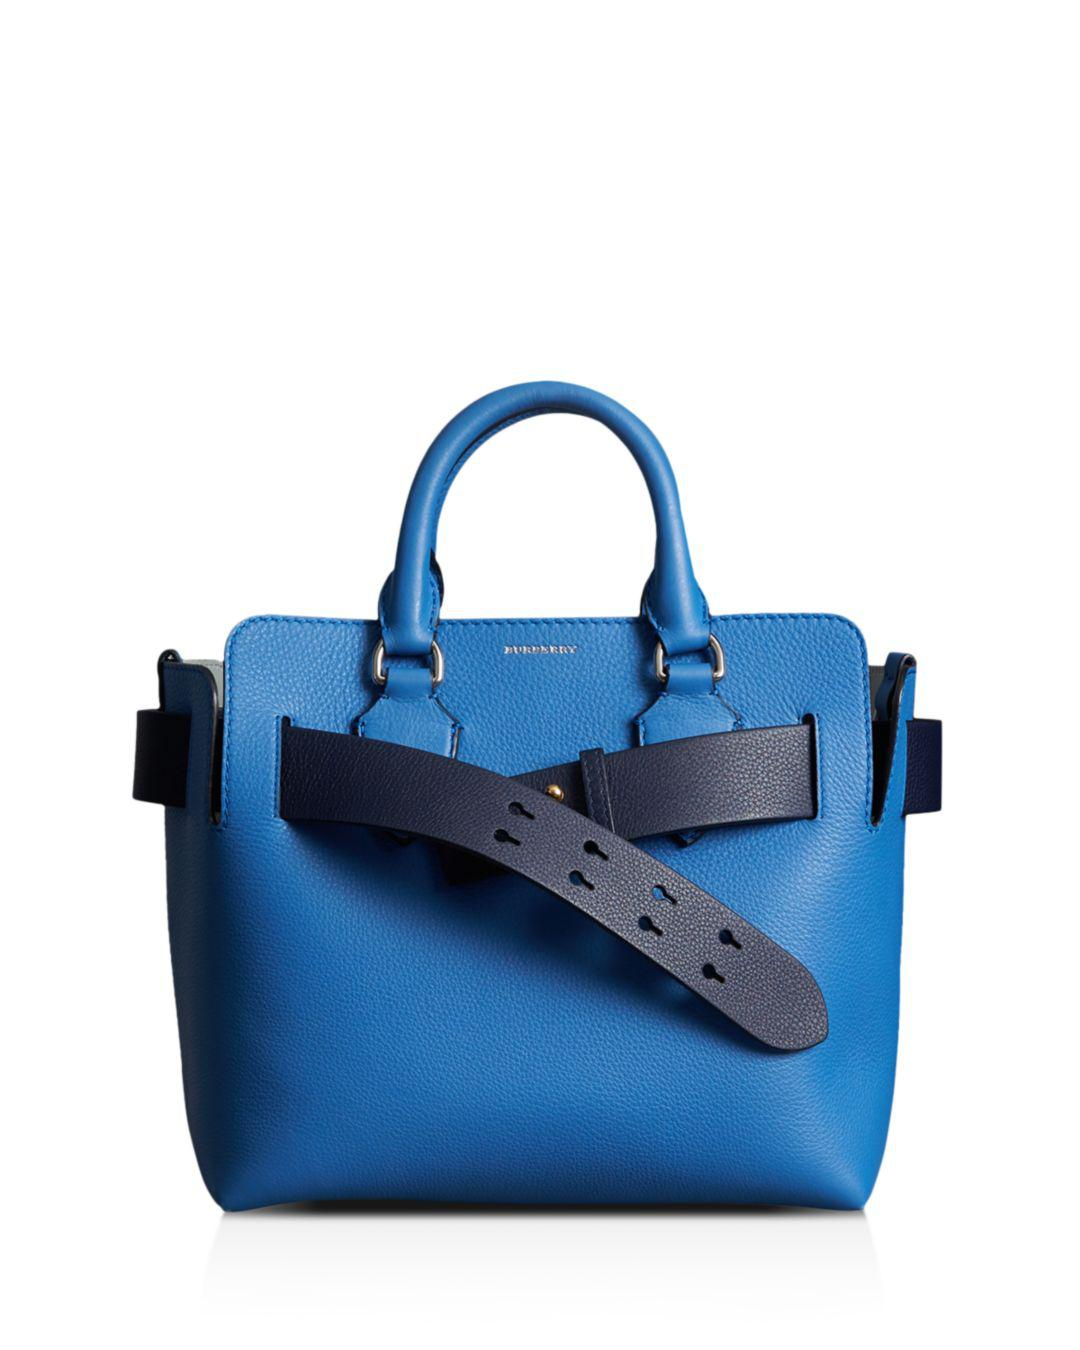 b5848f67eac3 Lyst - Burberry Small Leather Belt Bag in Blue - Save 30%